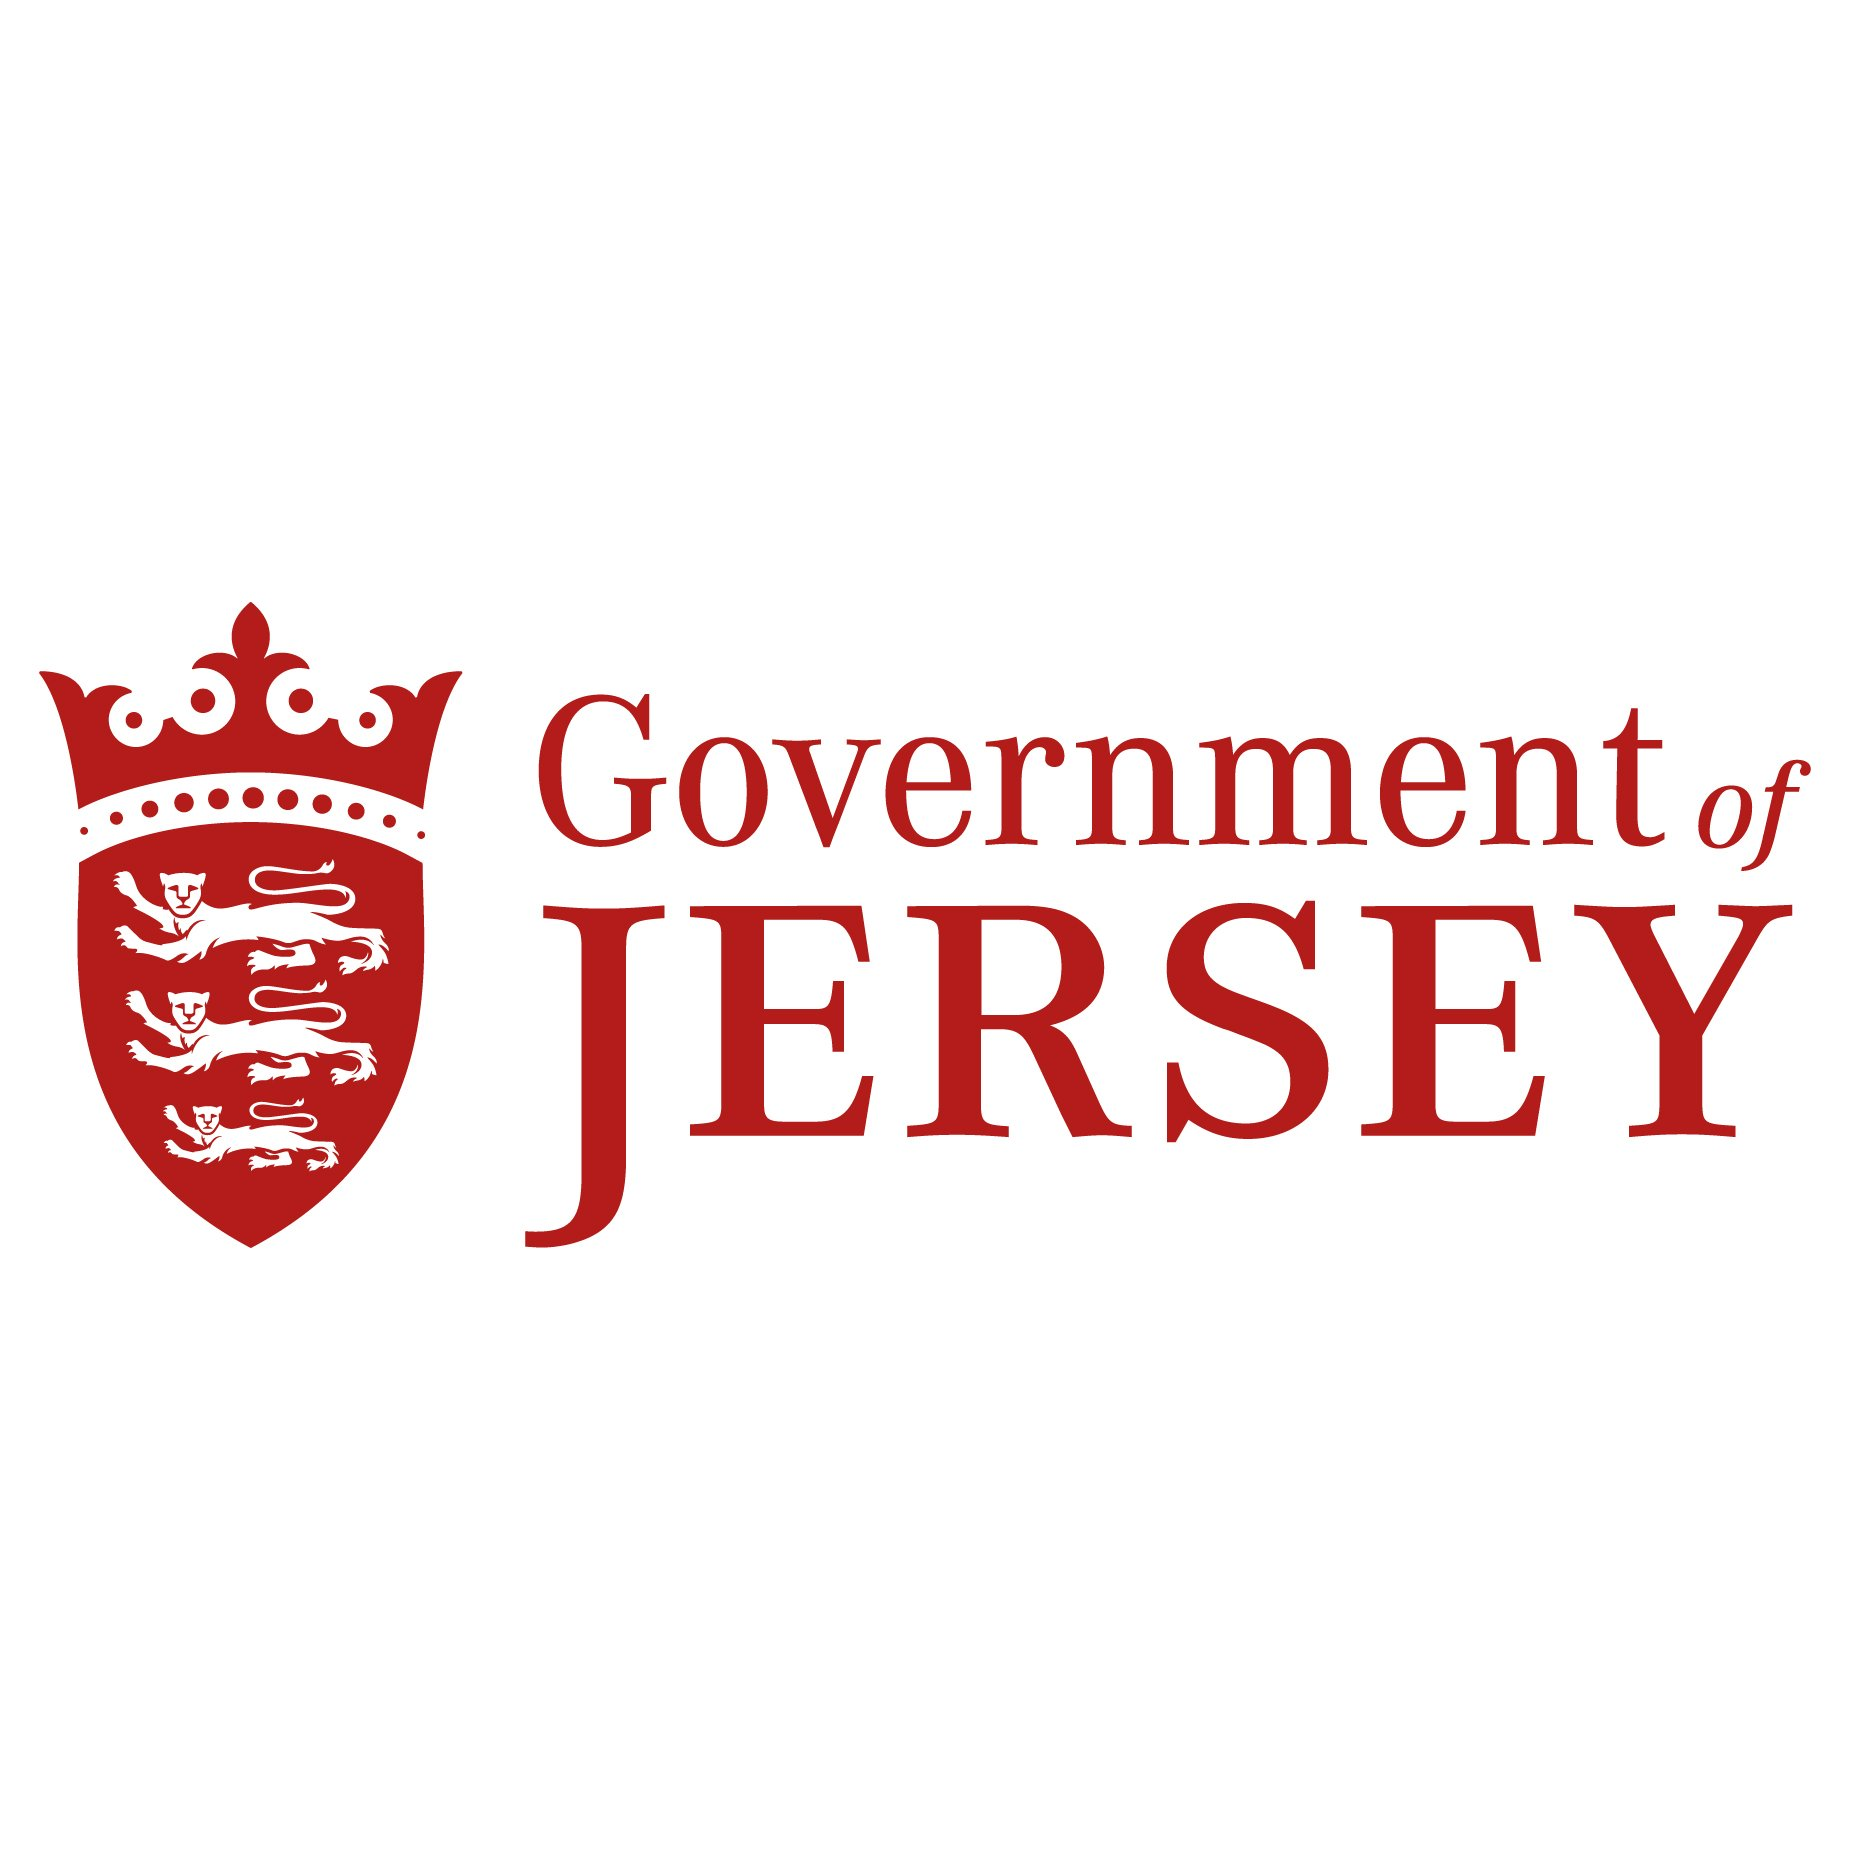 Government of Jersey